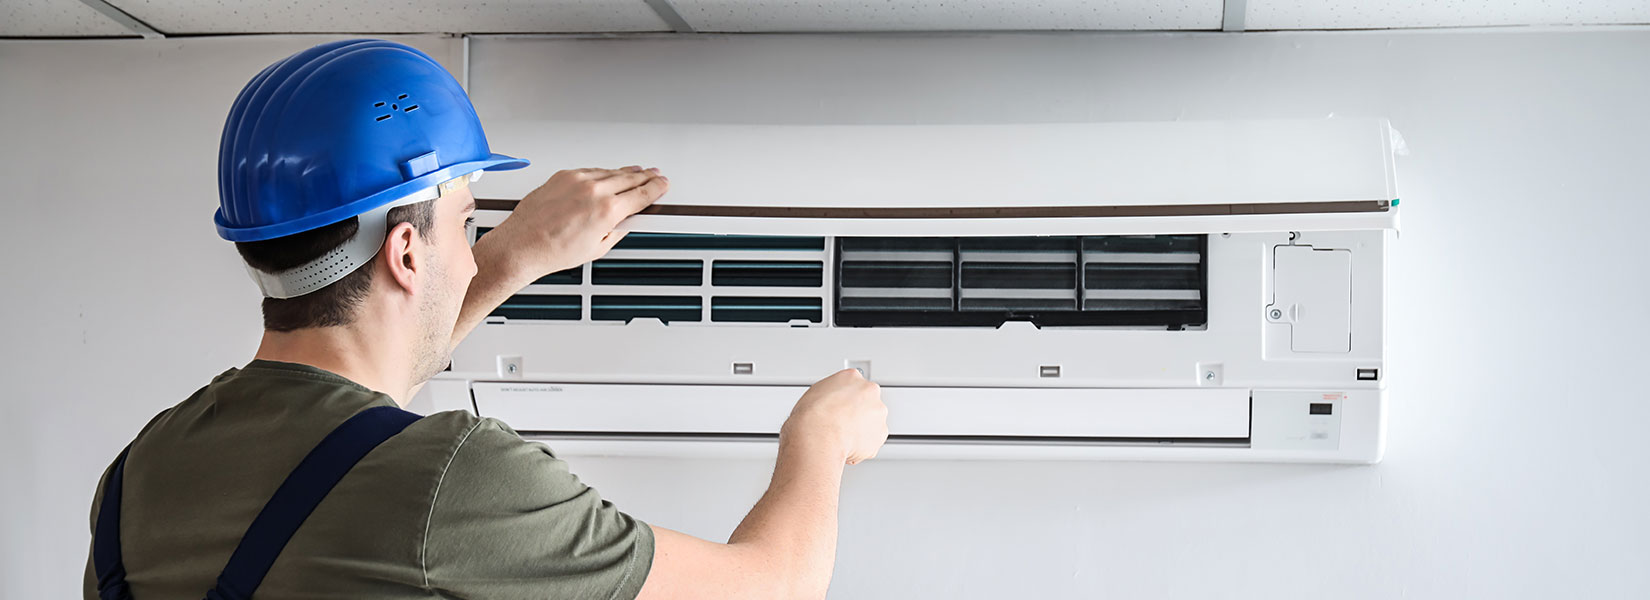 How To Minimize Issues With Your Air Conditioner Through Proper AC Maintenance